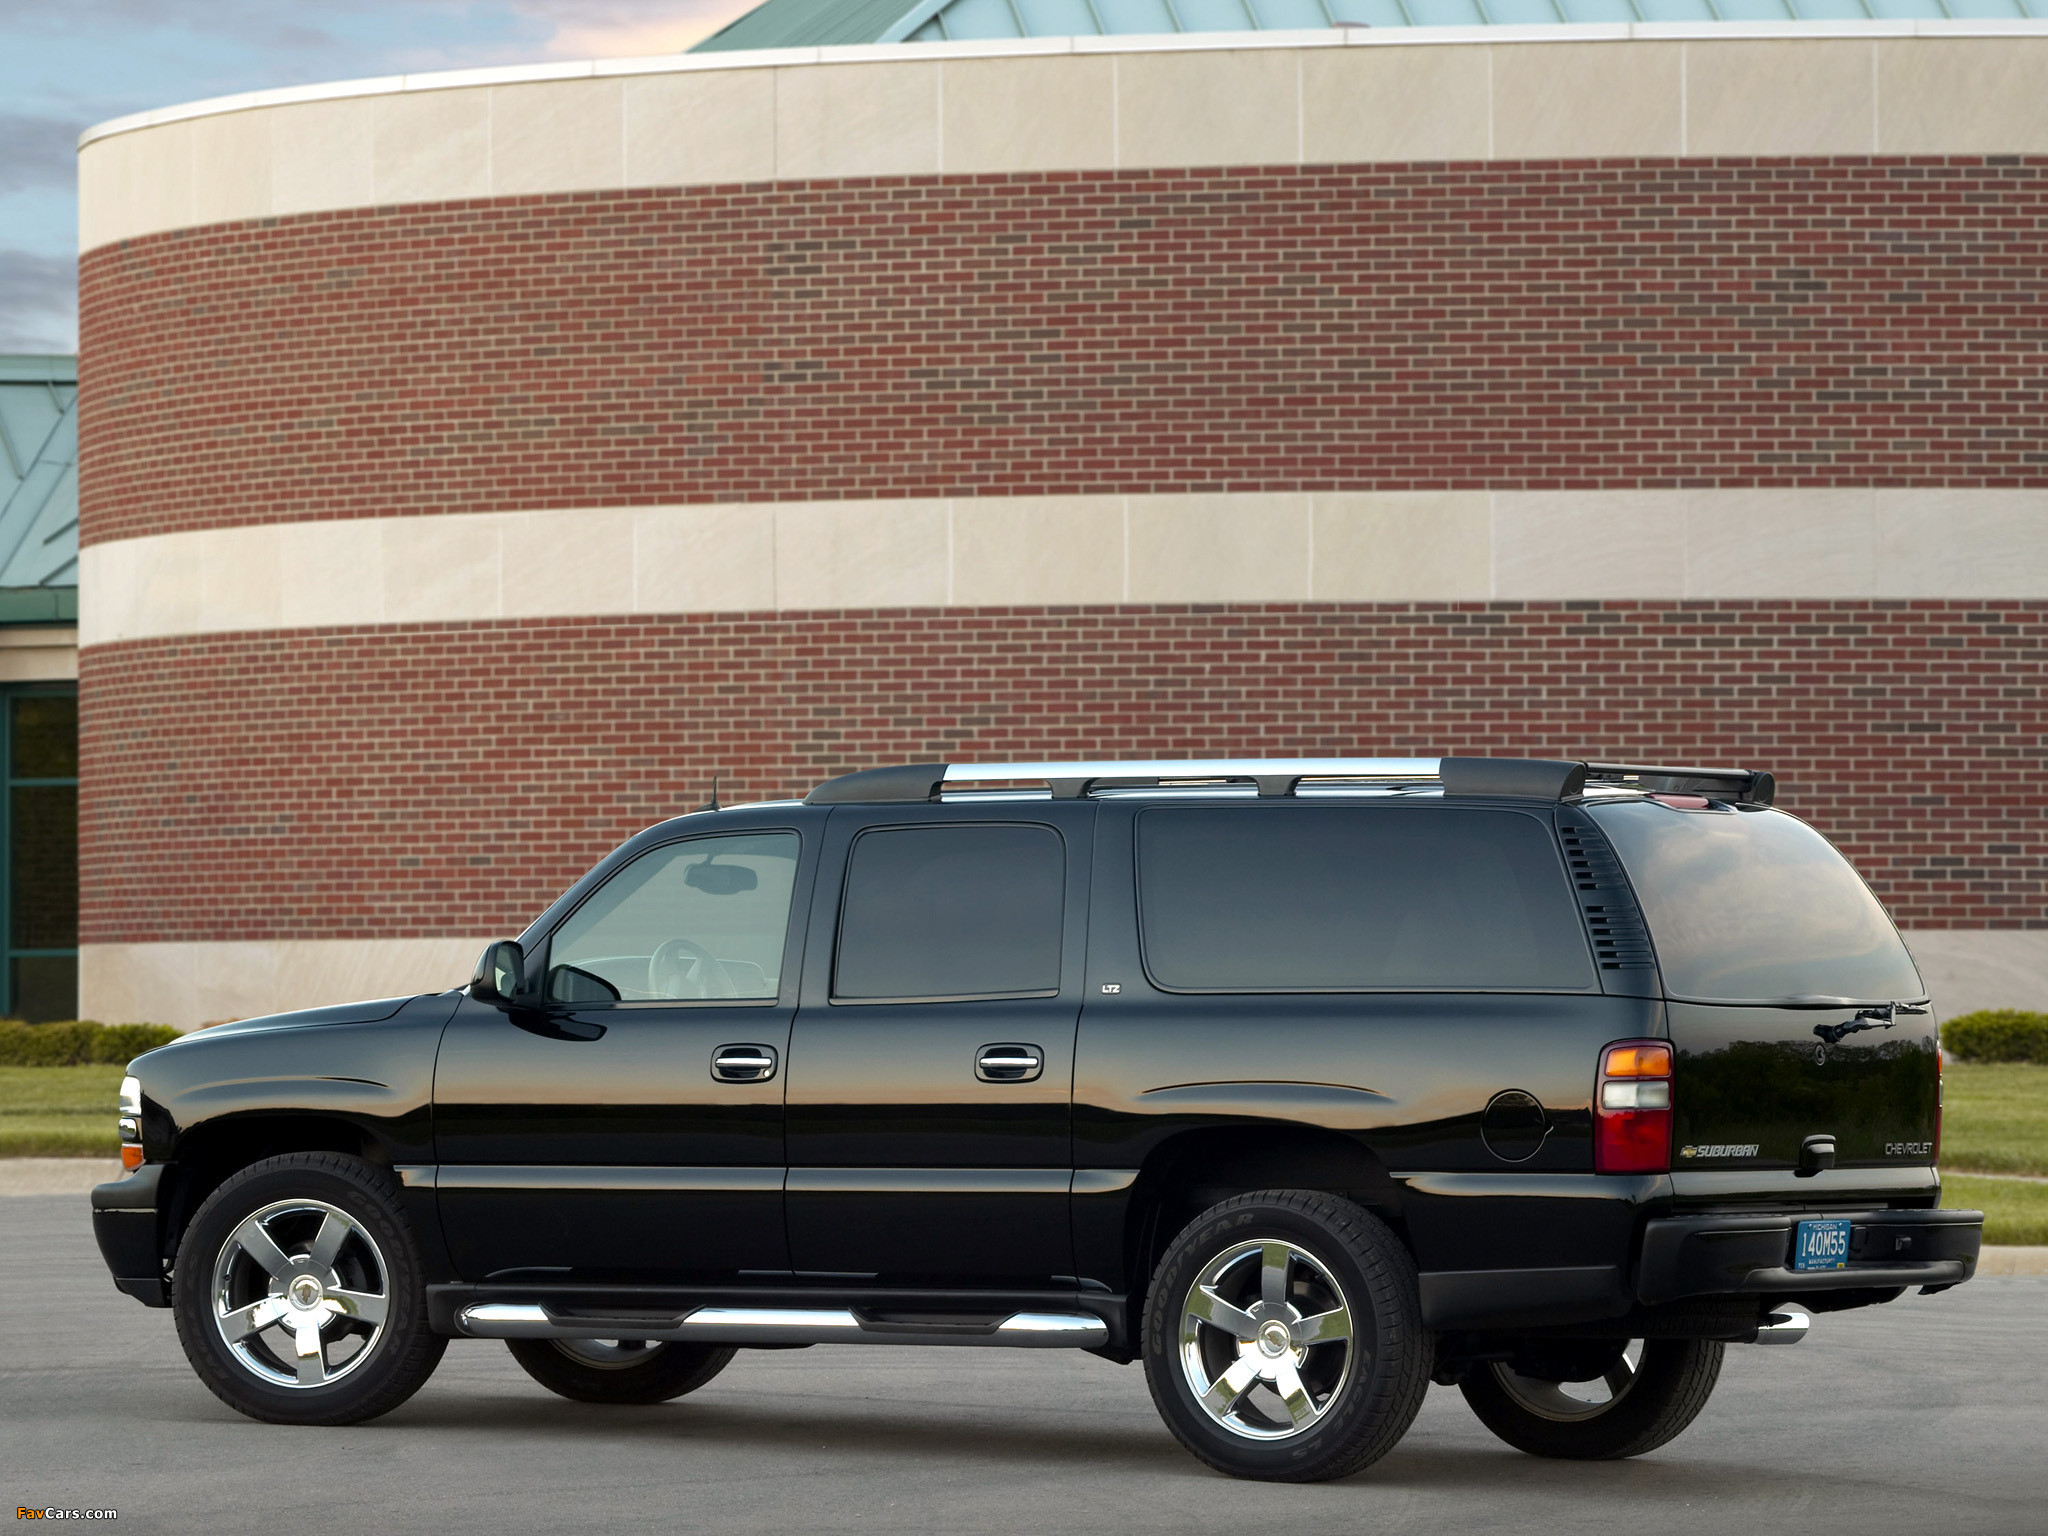 Res: 2048x1536, Chevrolet Suburban An American Revolution 2004 wallpapers (2048 x 1536)